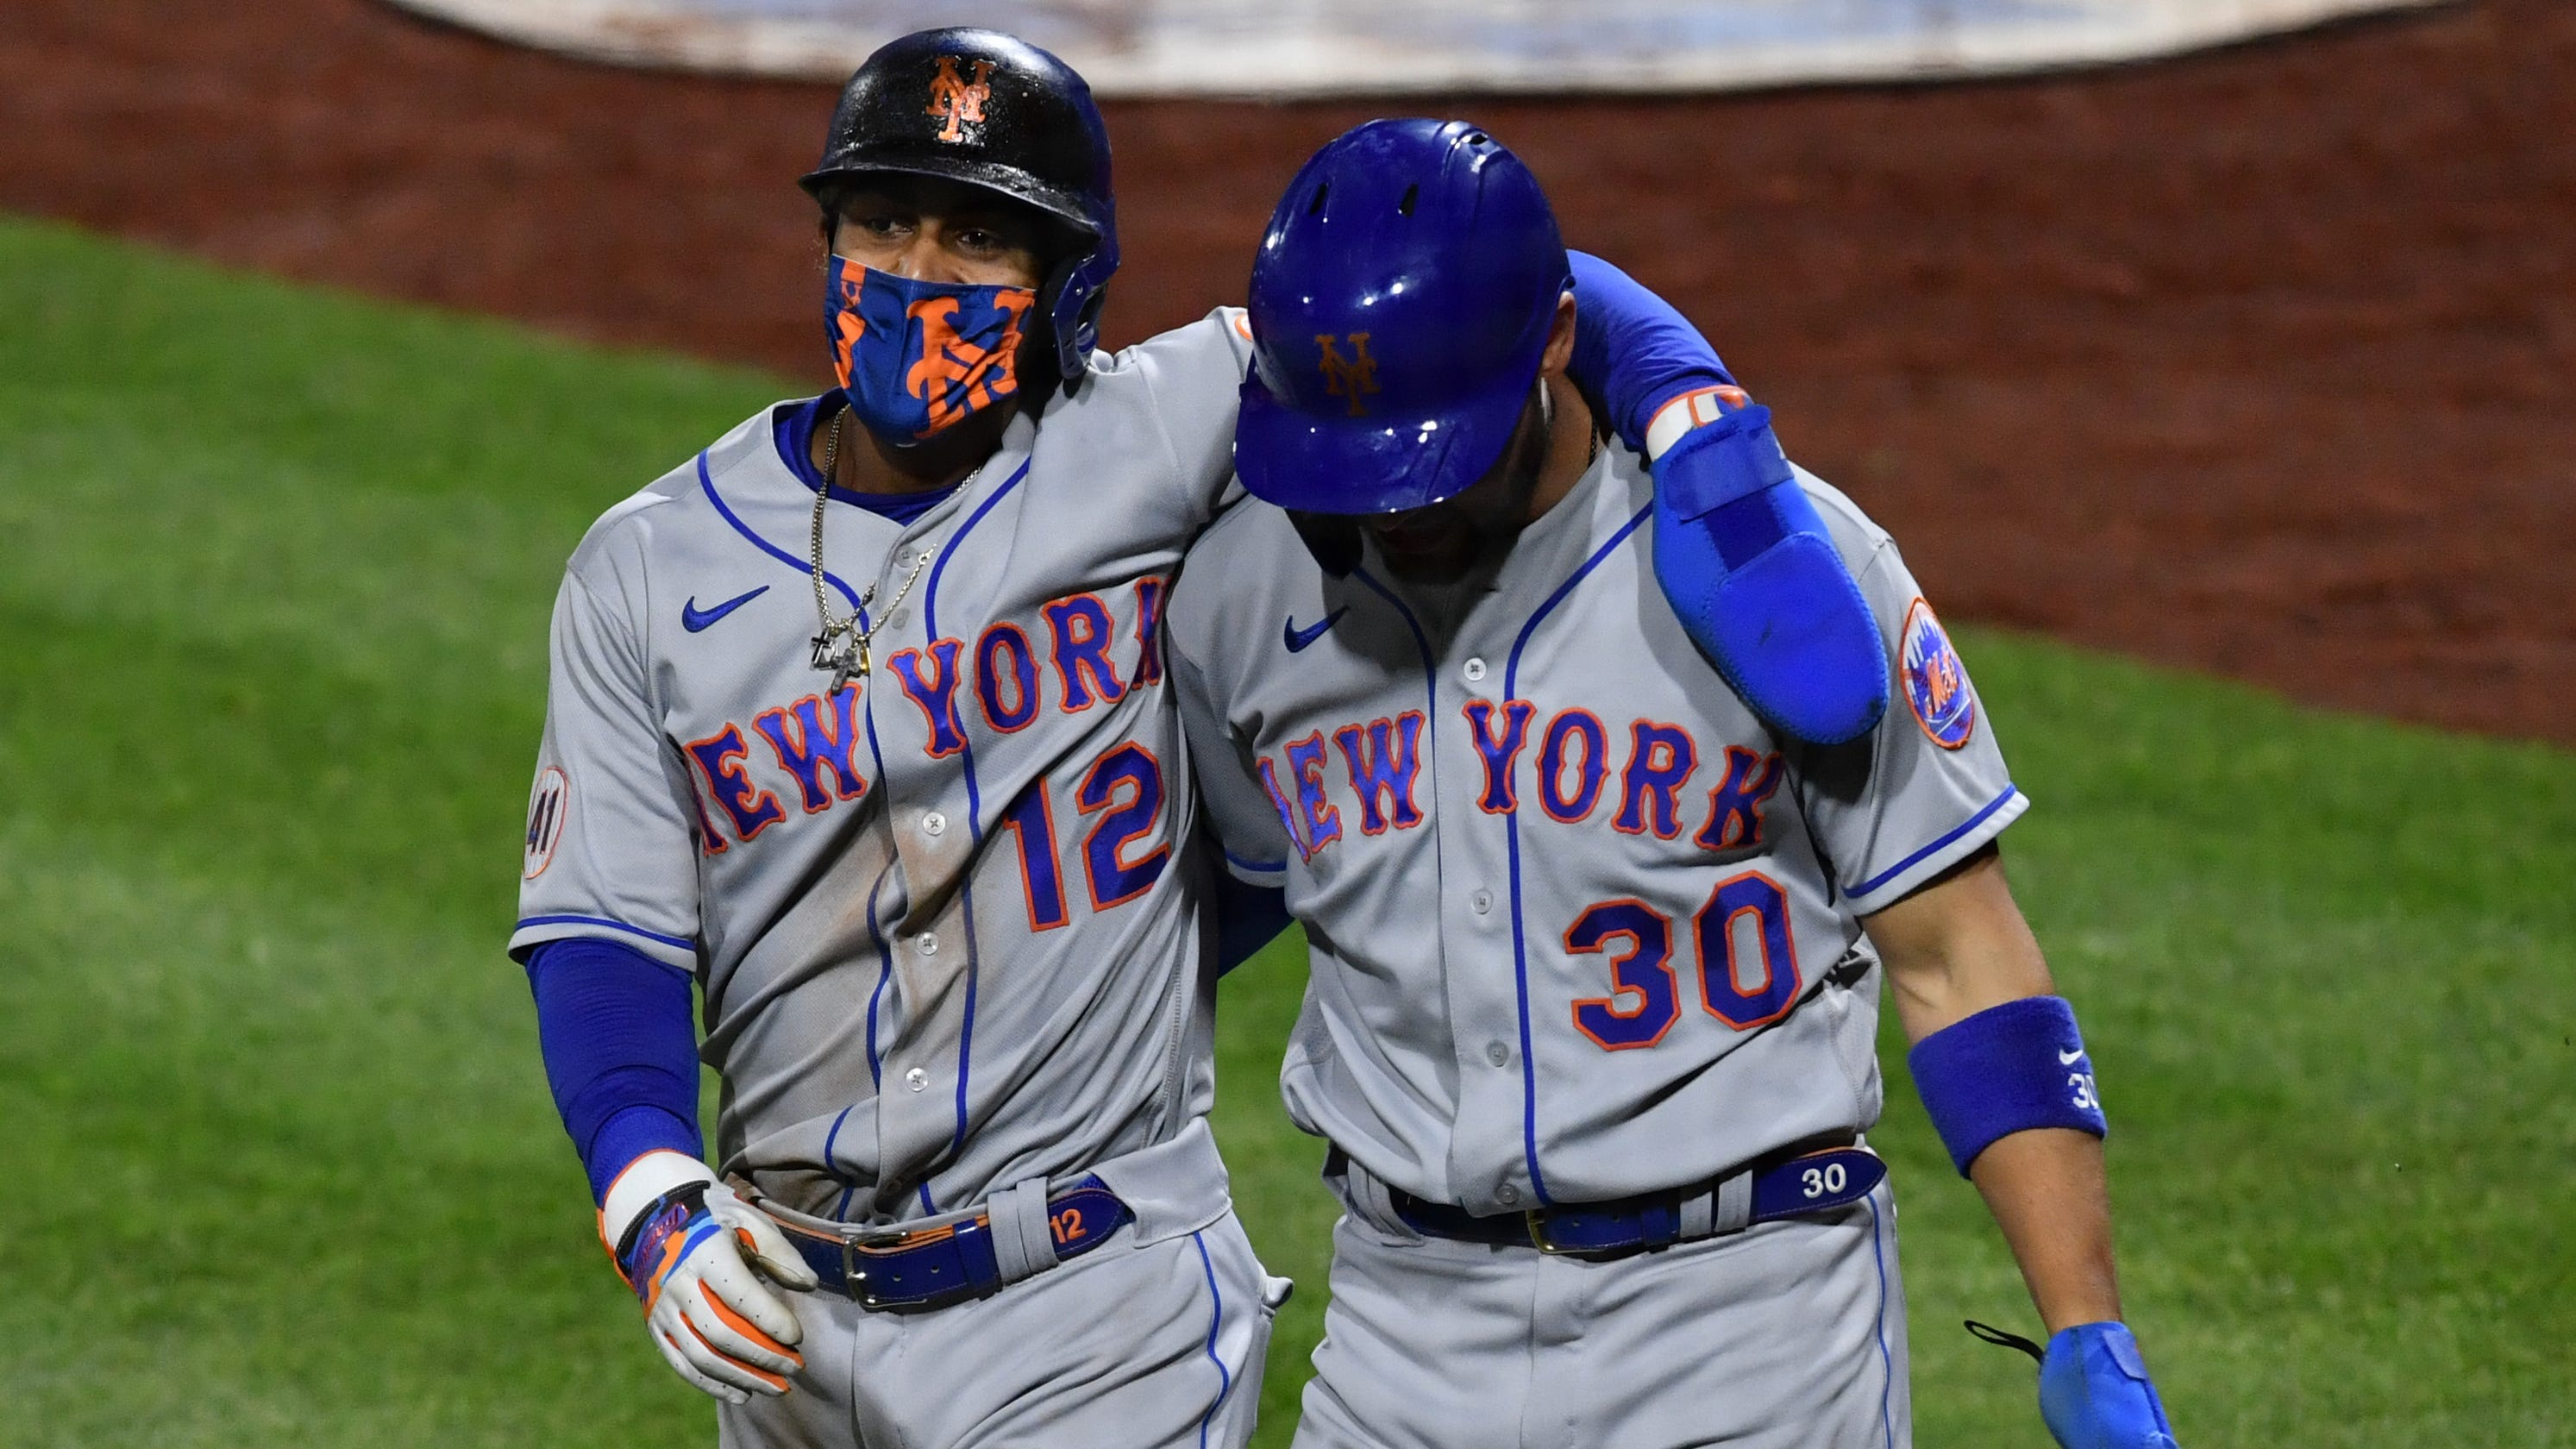 The NL East was supposed to be MLB's best division, but things have been ugly. What happened?